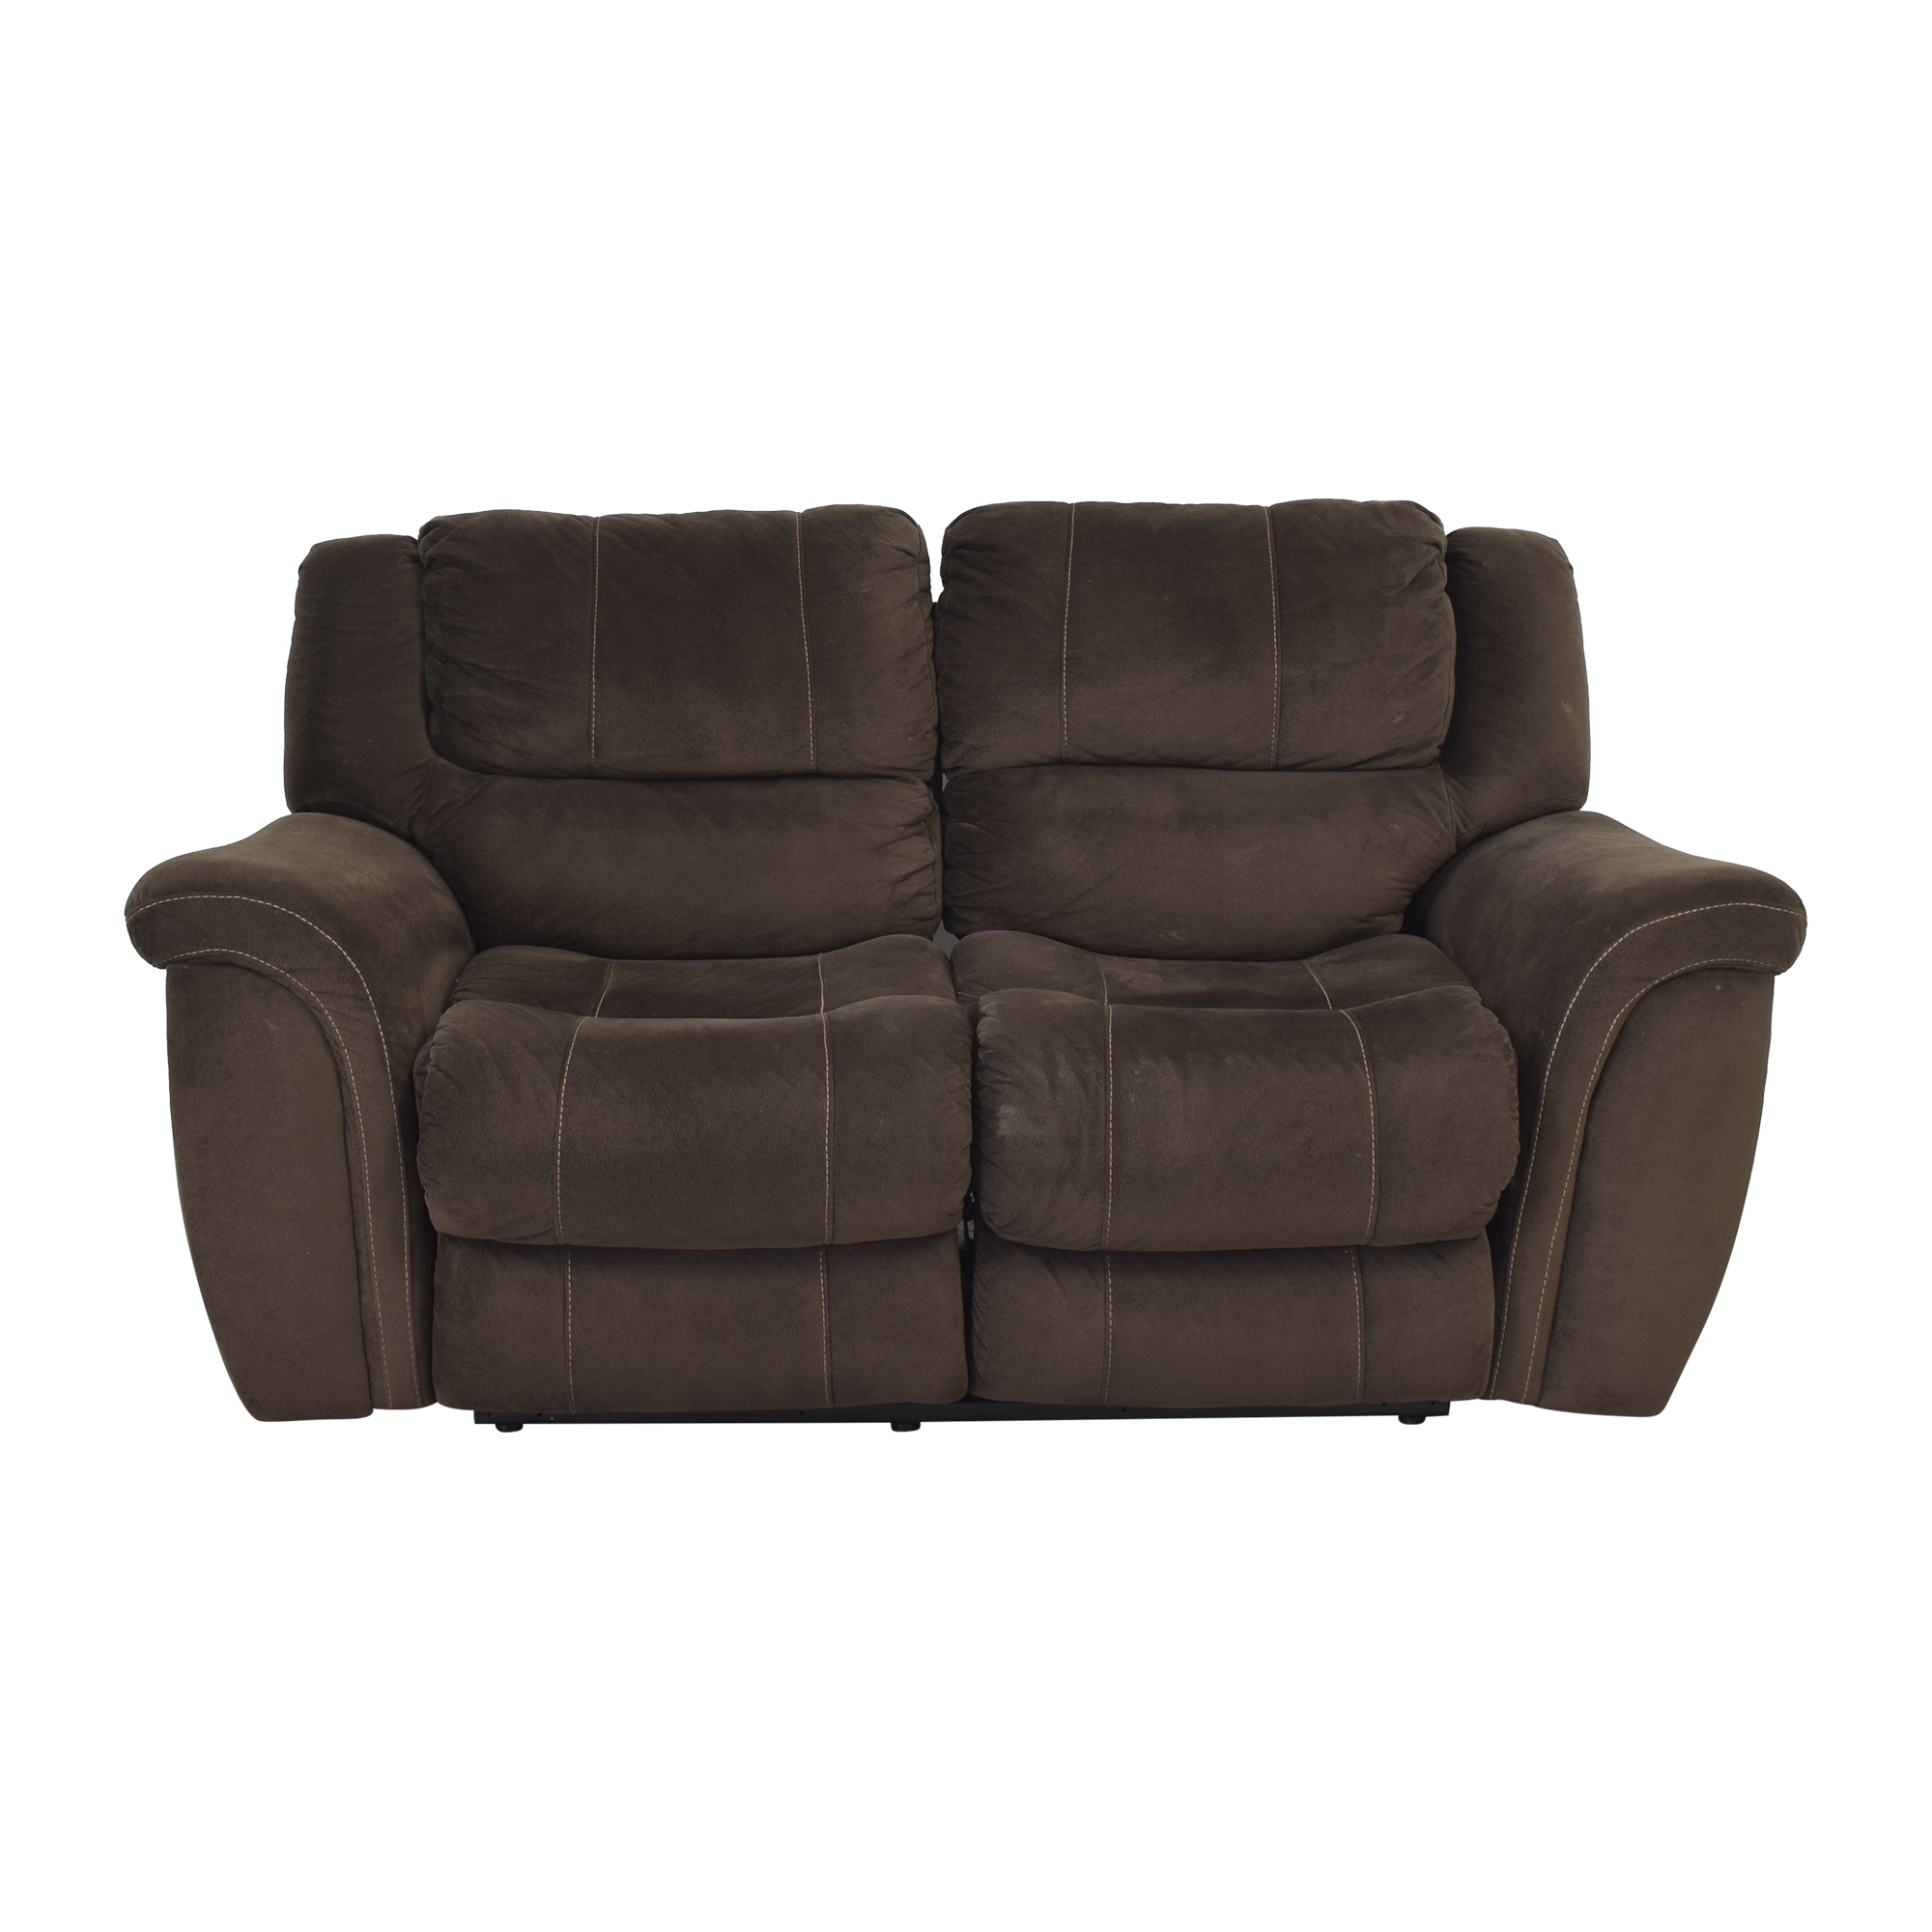 buy Raymour & Flanigan Double Recliner Loveseat Raymour & Flanigan Classic Sofas